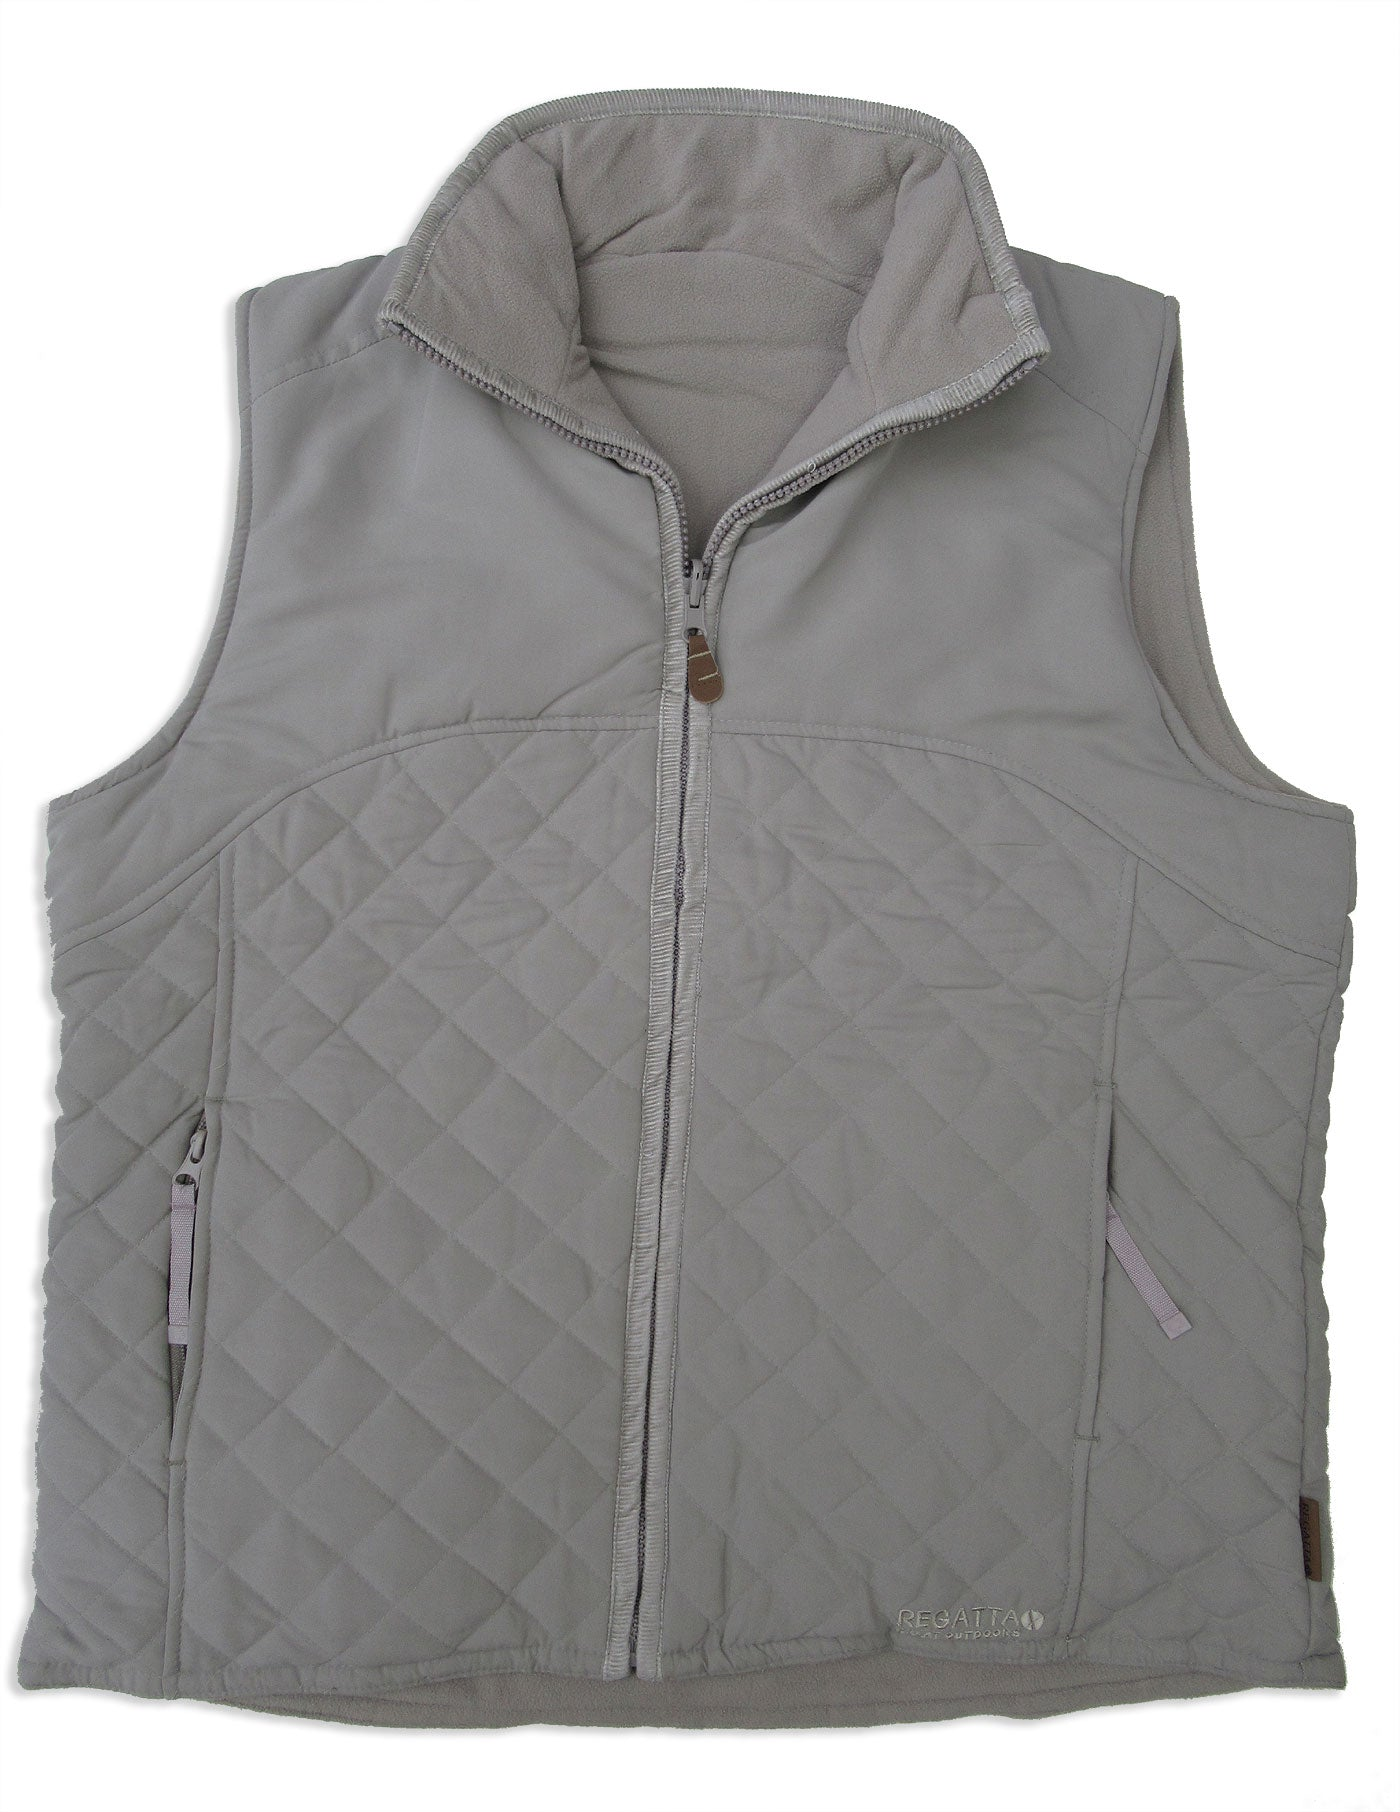 SAND Bronwen Body Warmer by Regatta